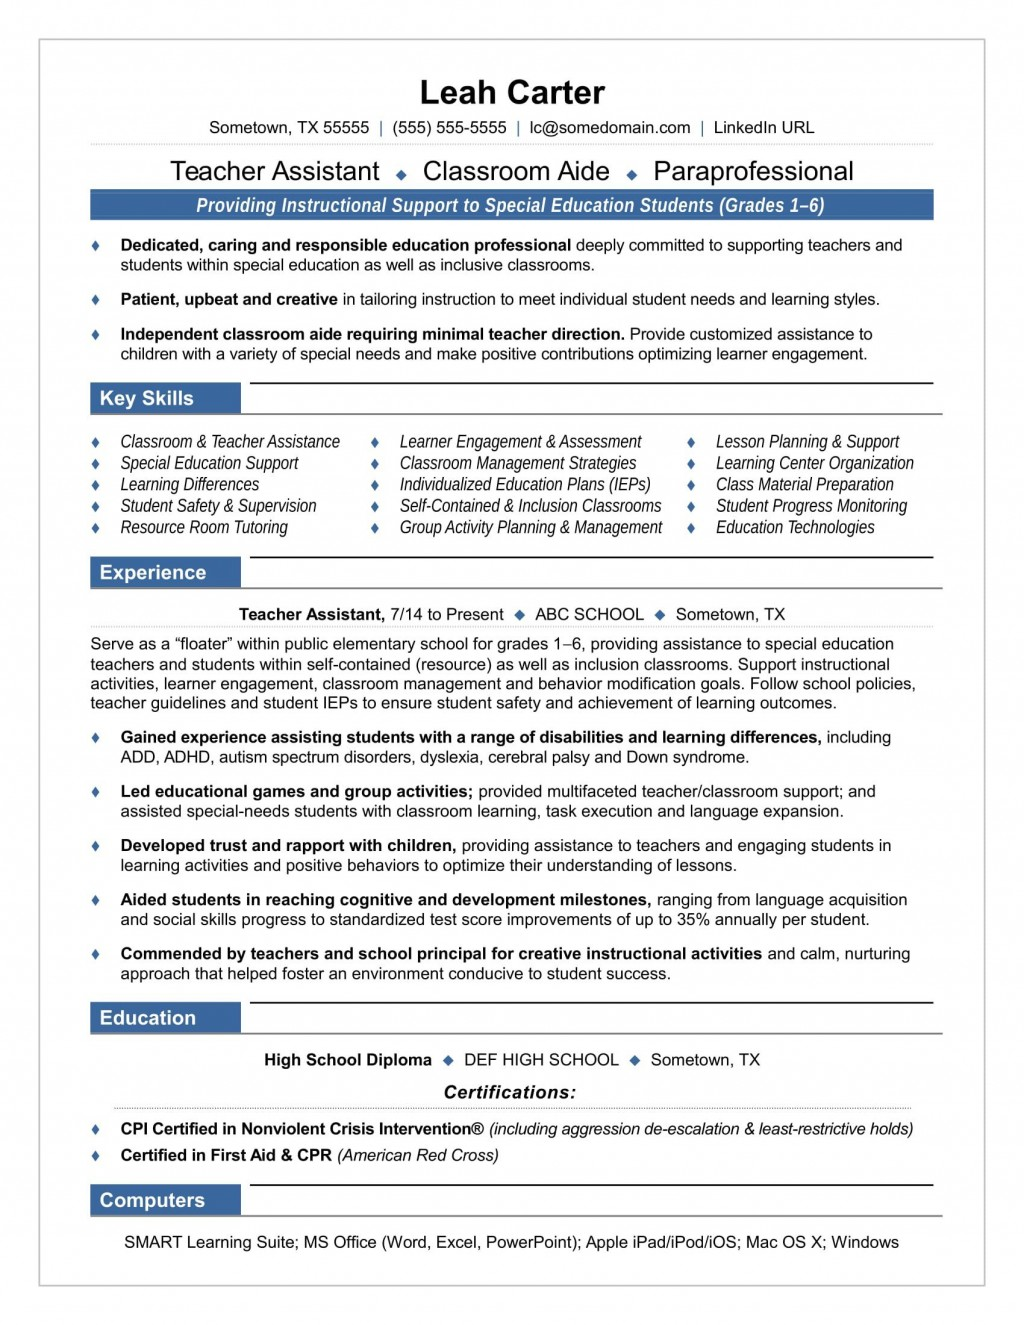 007 Simple Cv Template For Teaching Highest Clarity  Sample Teacher Assistant Modern Word Free Download JobLarge